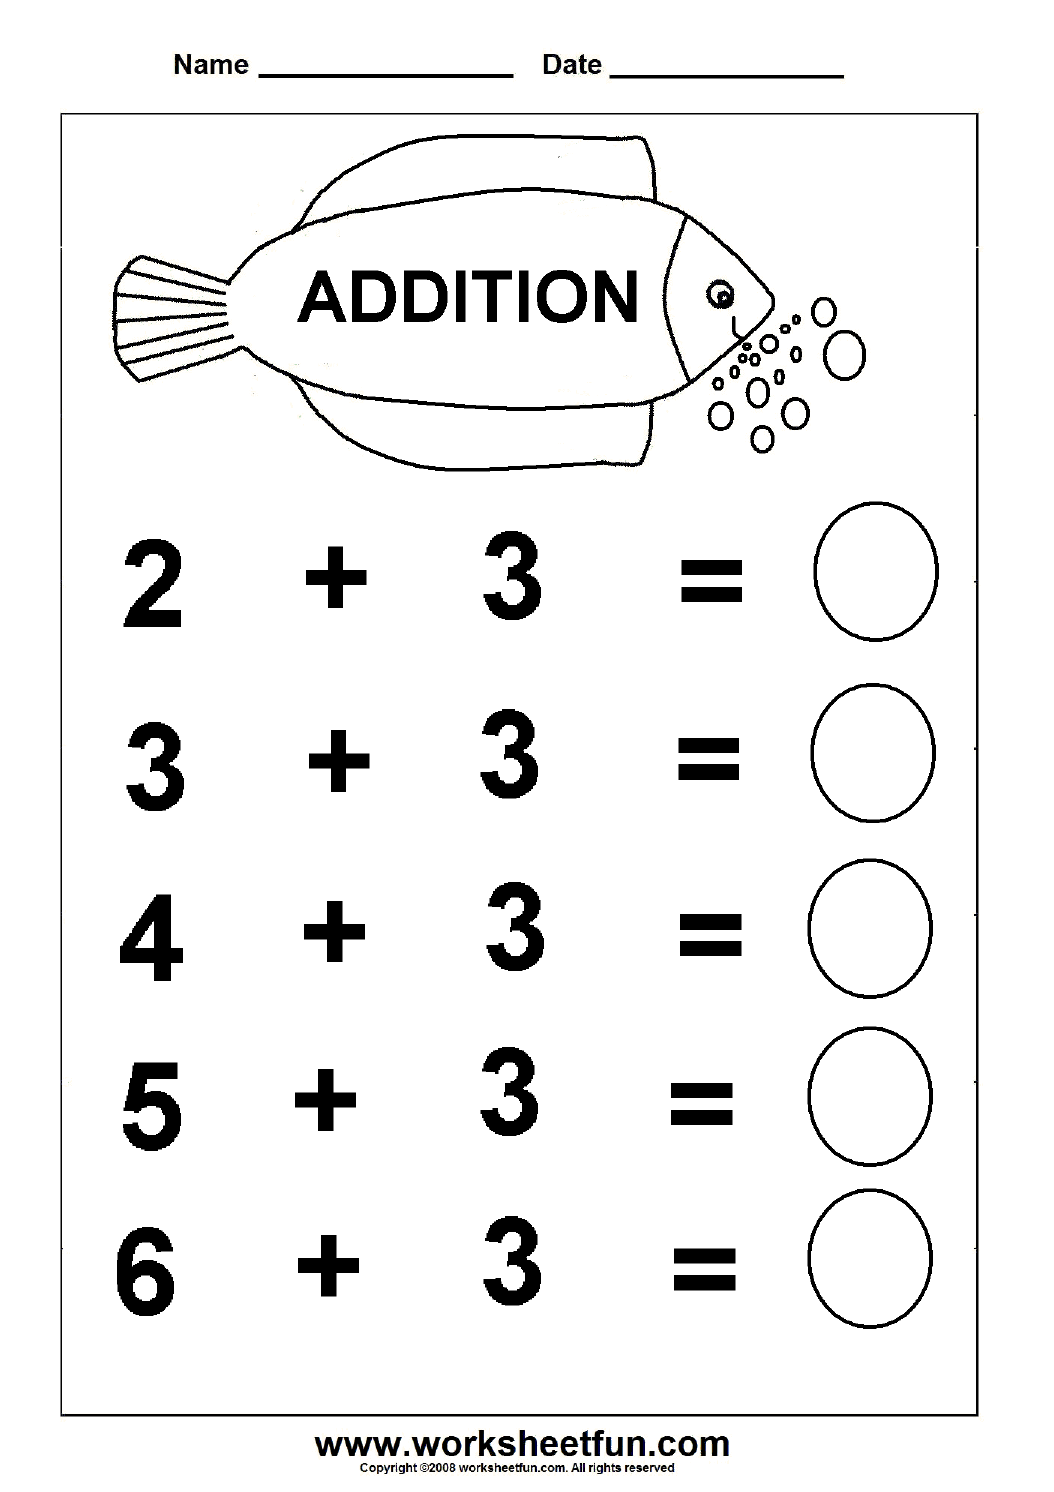 Worksheets Preschool Addition Worksheets beginner addition 6 kindergarten worksheets free first grade worksheets